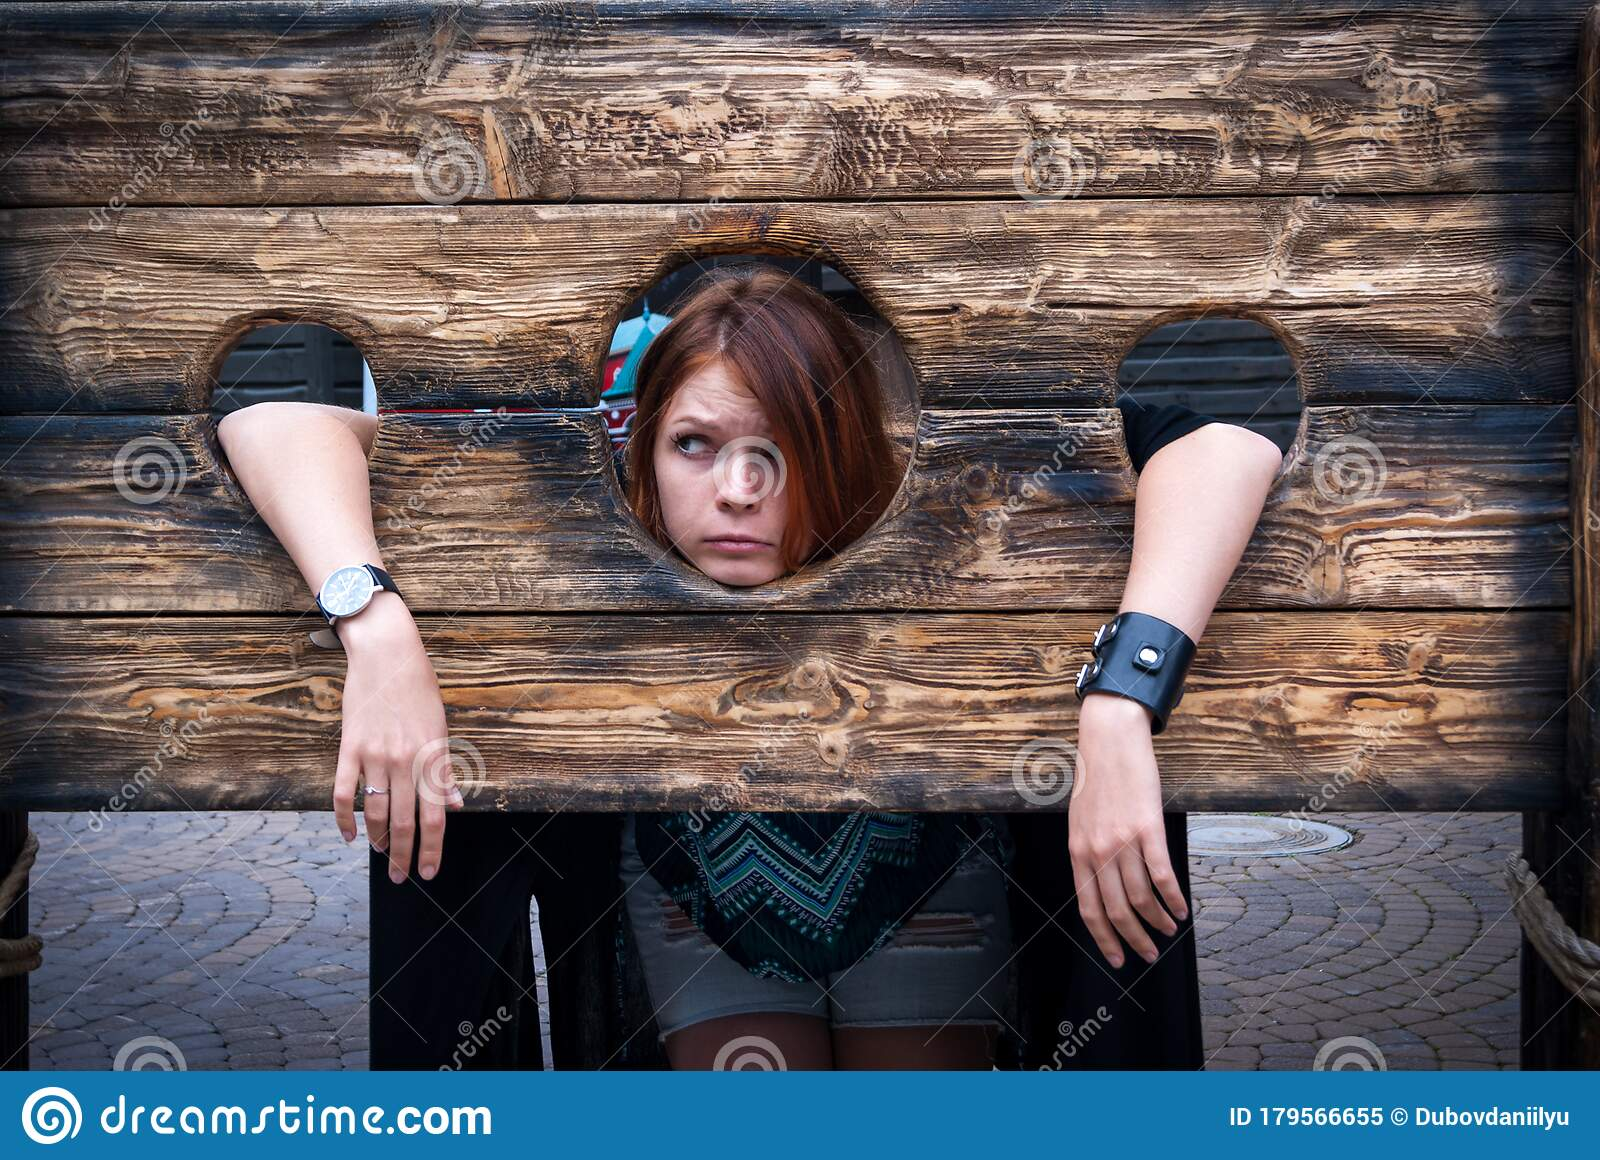 Chained Brunette Teen